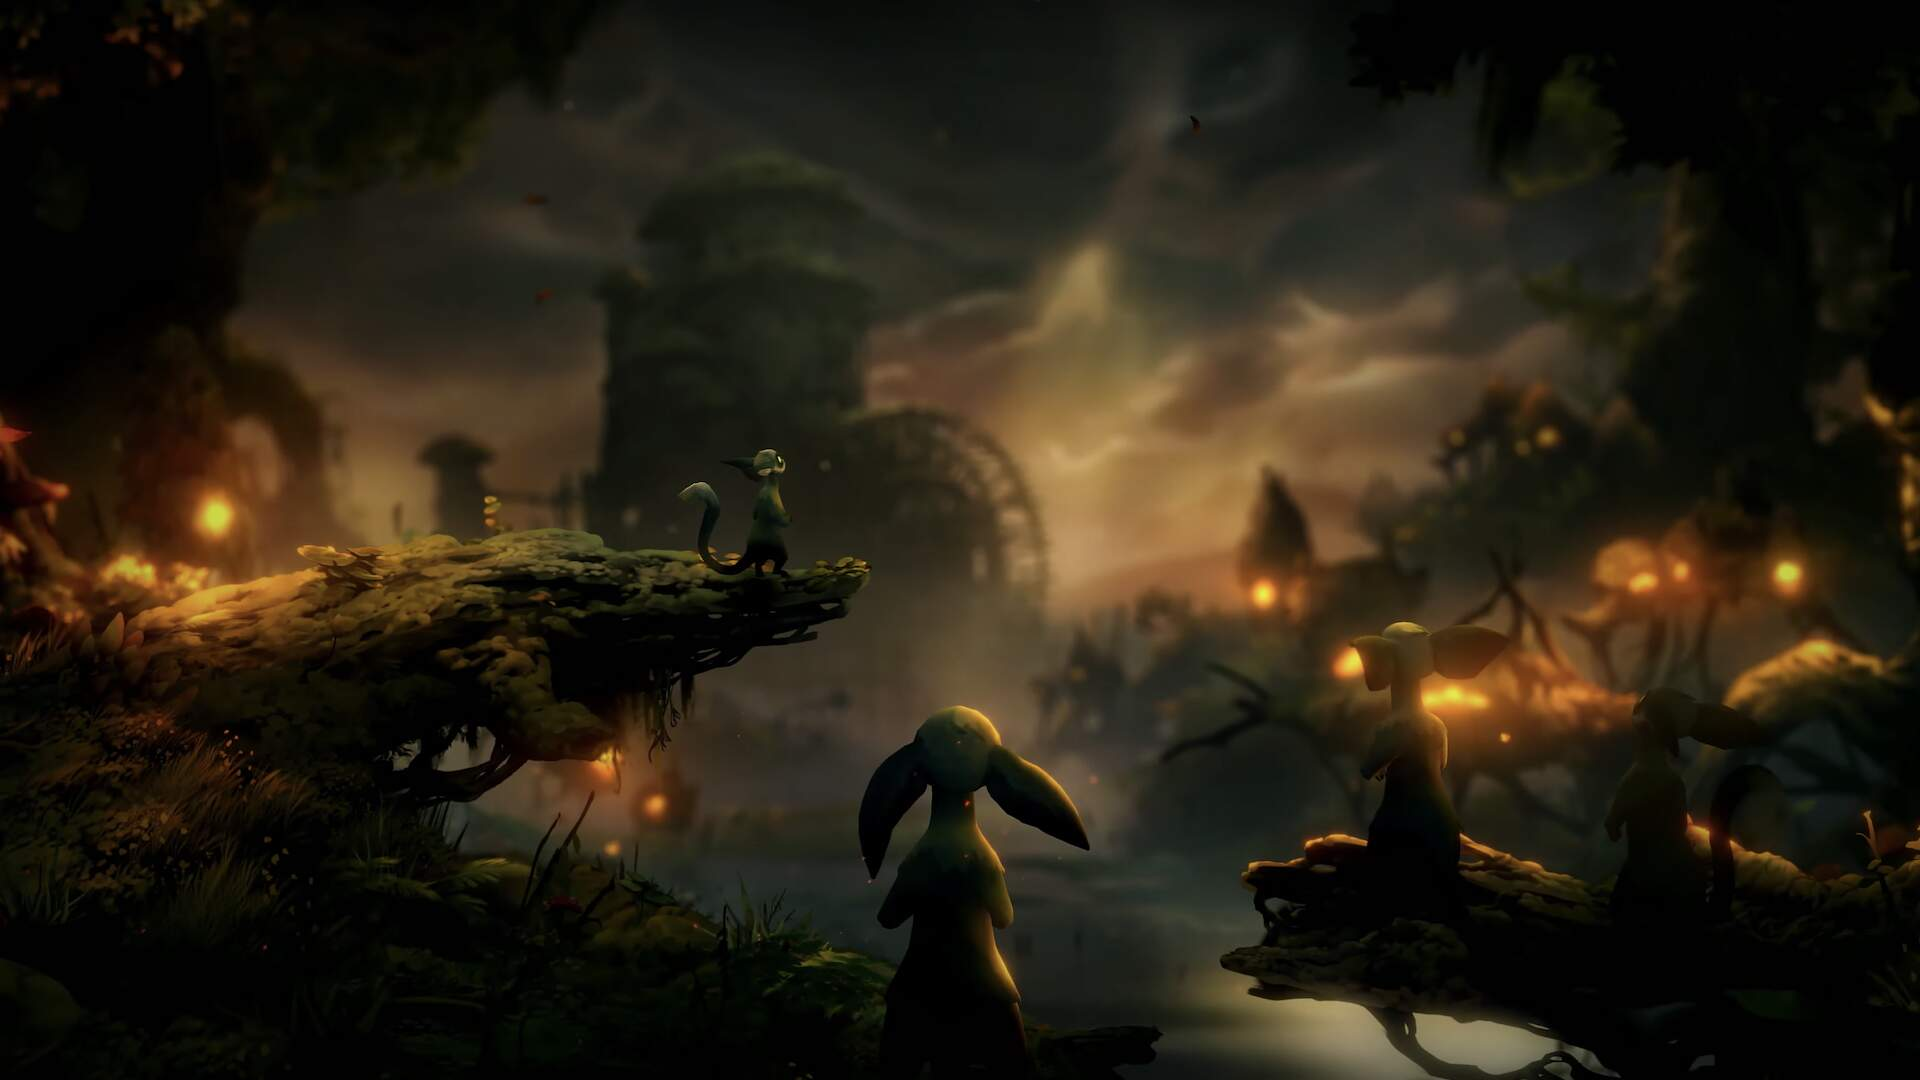 Ori and the Will of the Wisps Gets Delayed by One Month